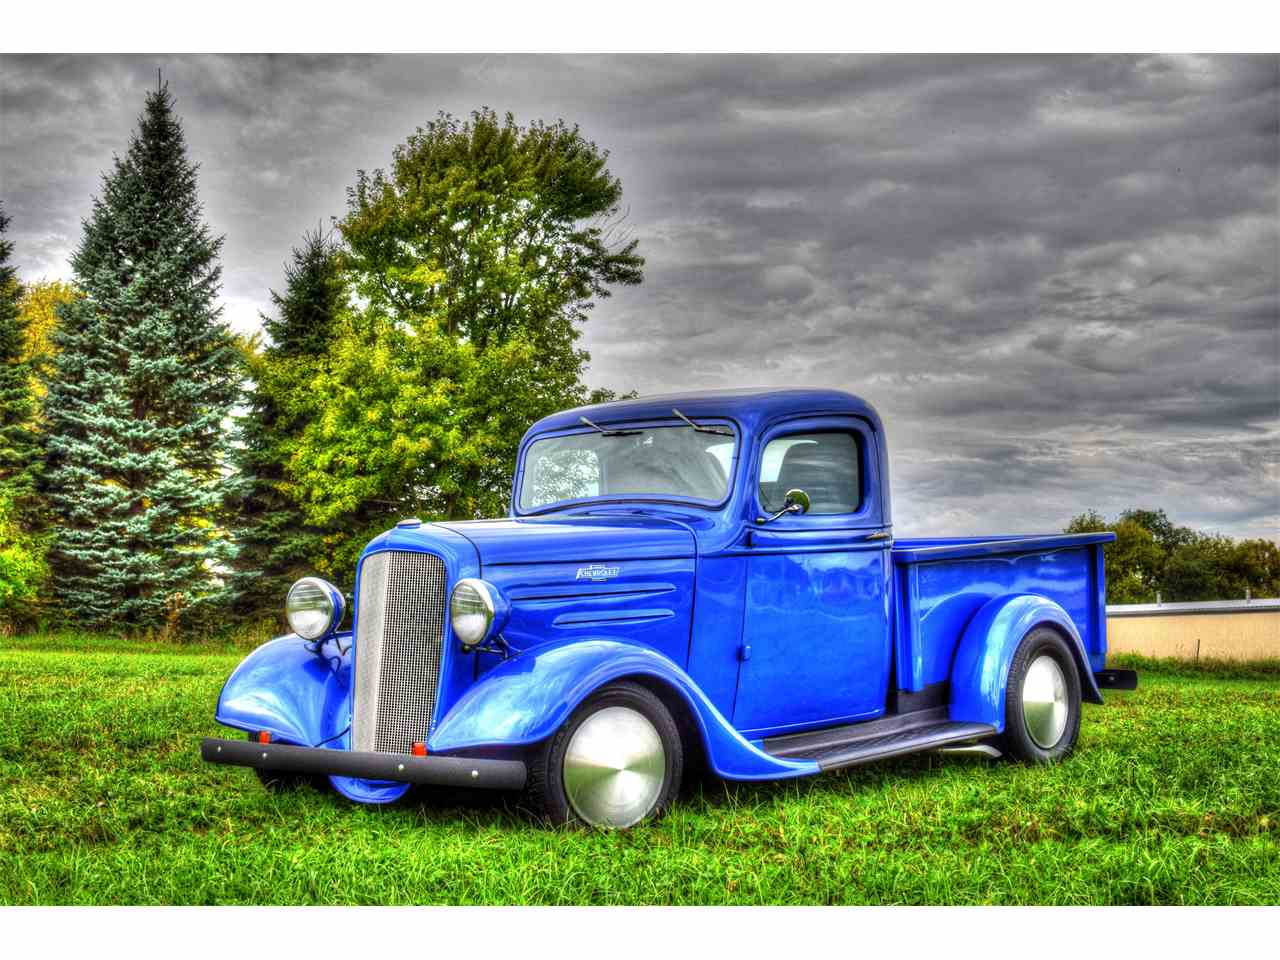 1937 to 1939 Chevrolet Pickup for Sale on ClassicCars.com - 11 ...